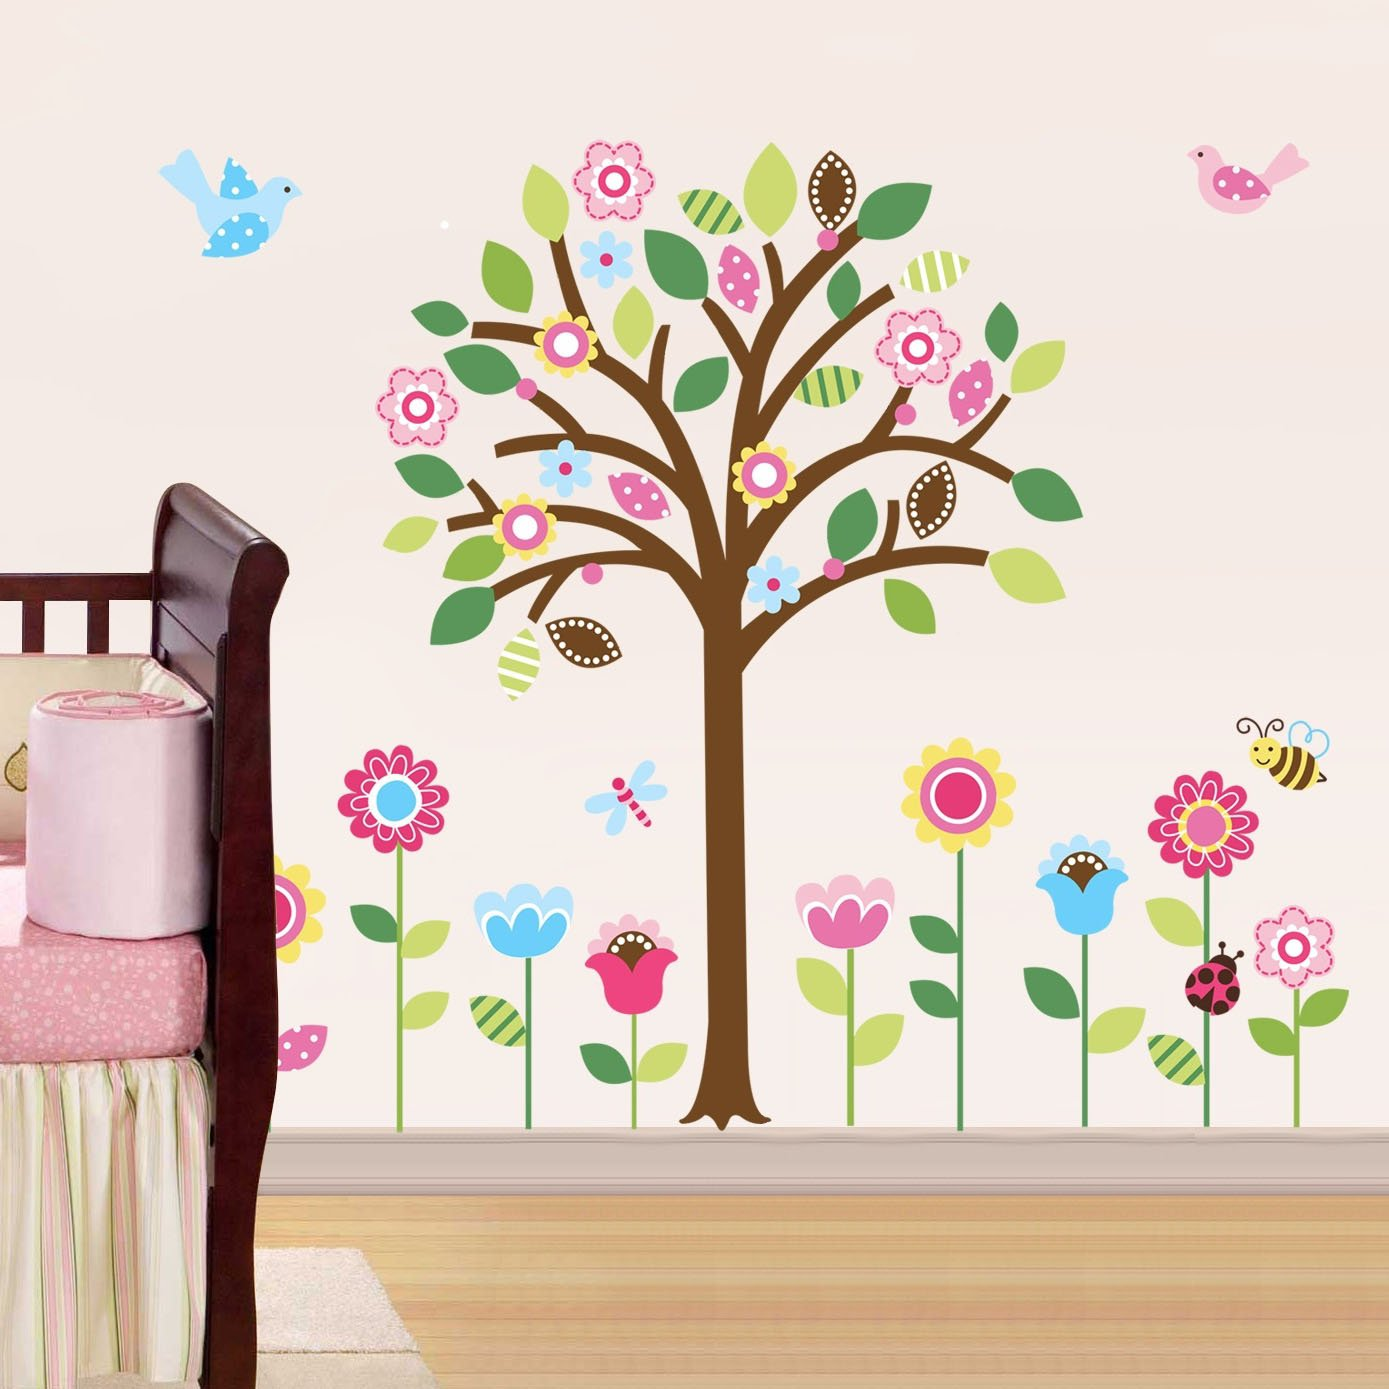 Superb Amazon.com: Pretty Pastel Garden Giant Peel U0026 Stick Wall Art Sticker  Decals: Baby